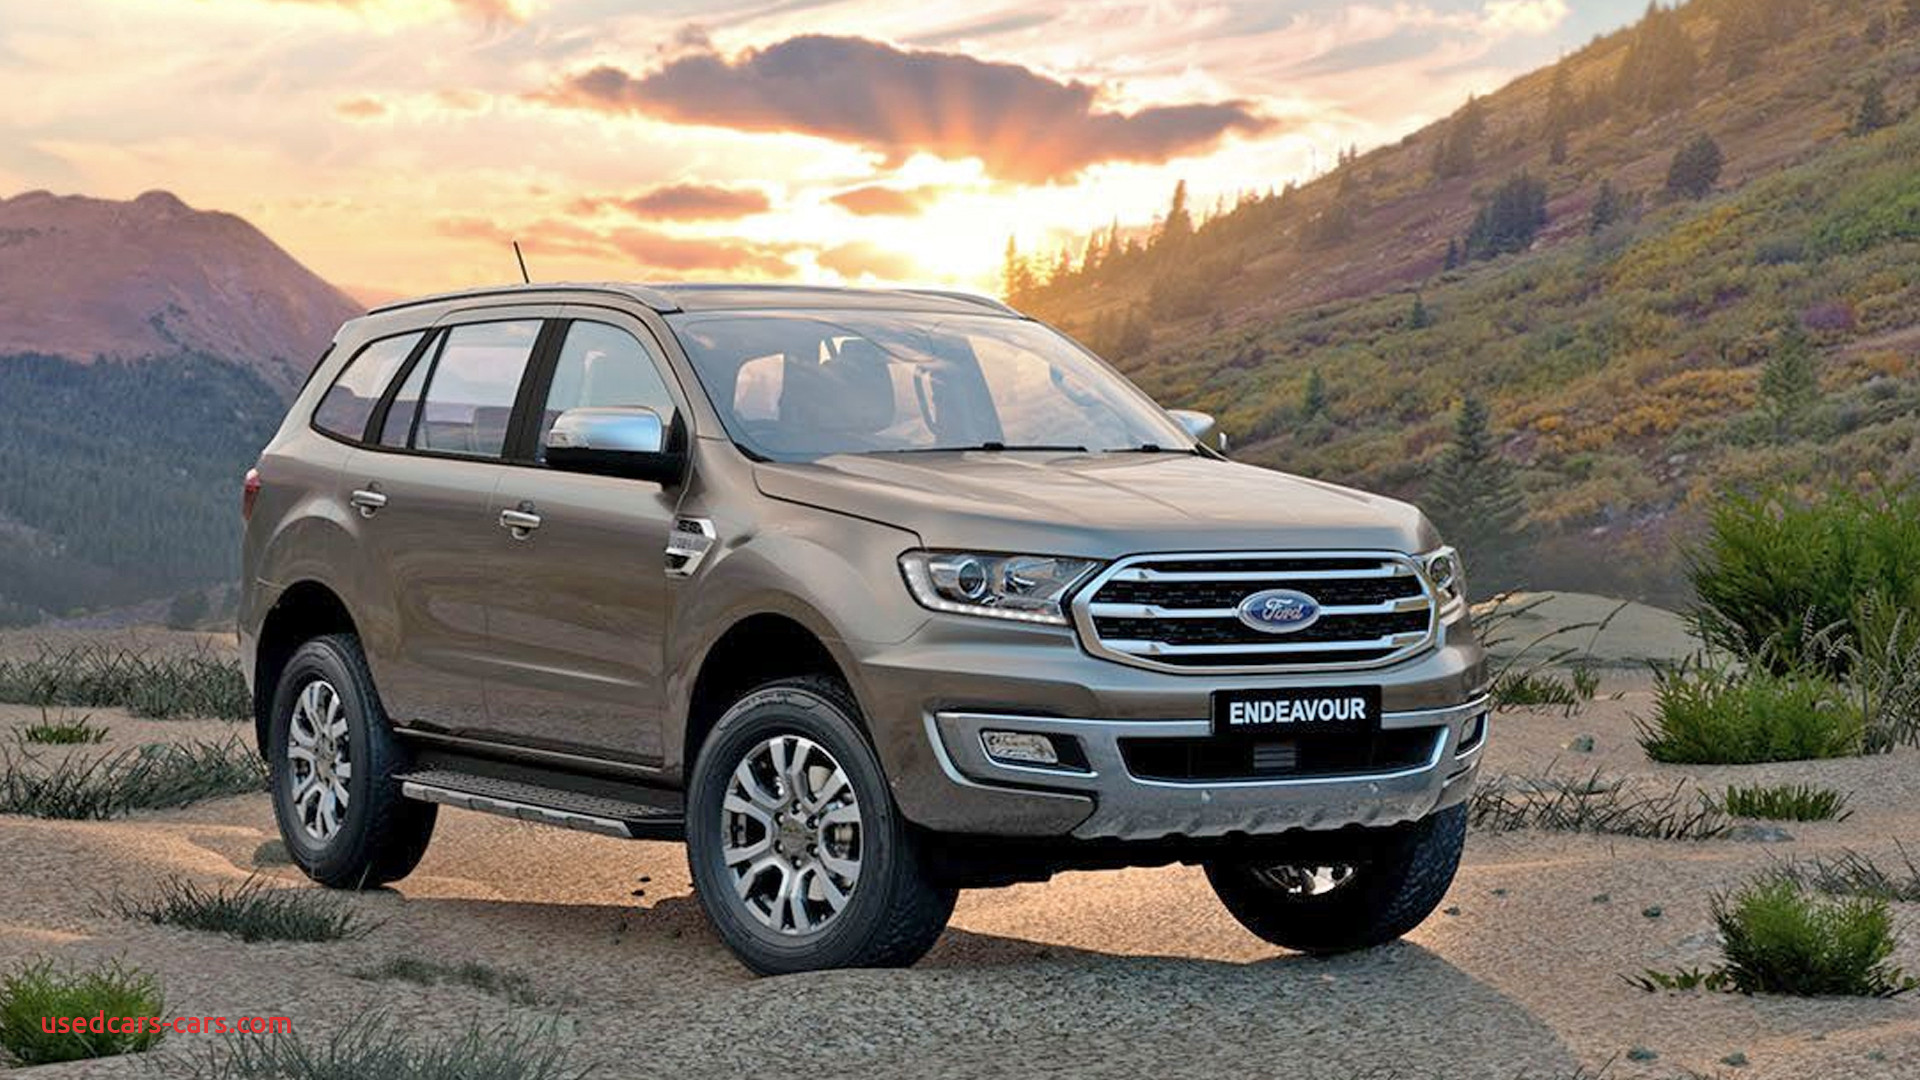 Ford Endeavour 001